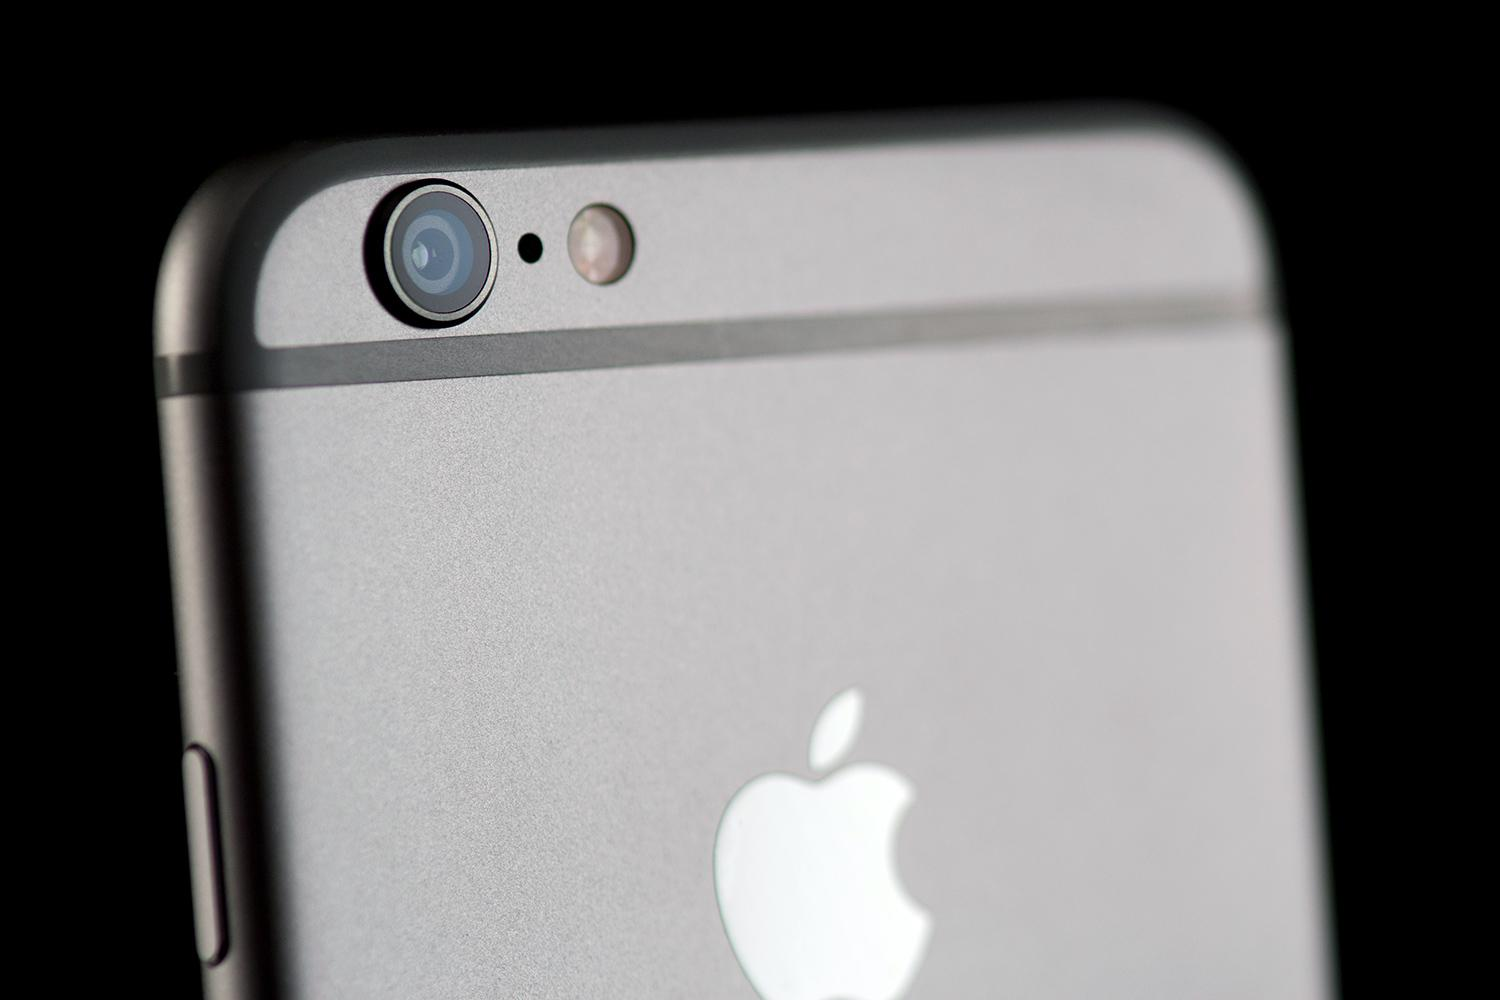 T-Mobile Cuts 64GB iPhone 6 Price $100 for Cyber Monday | Digital ...